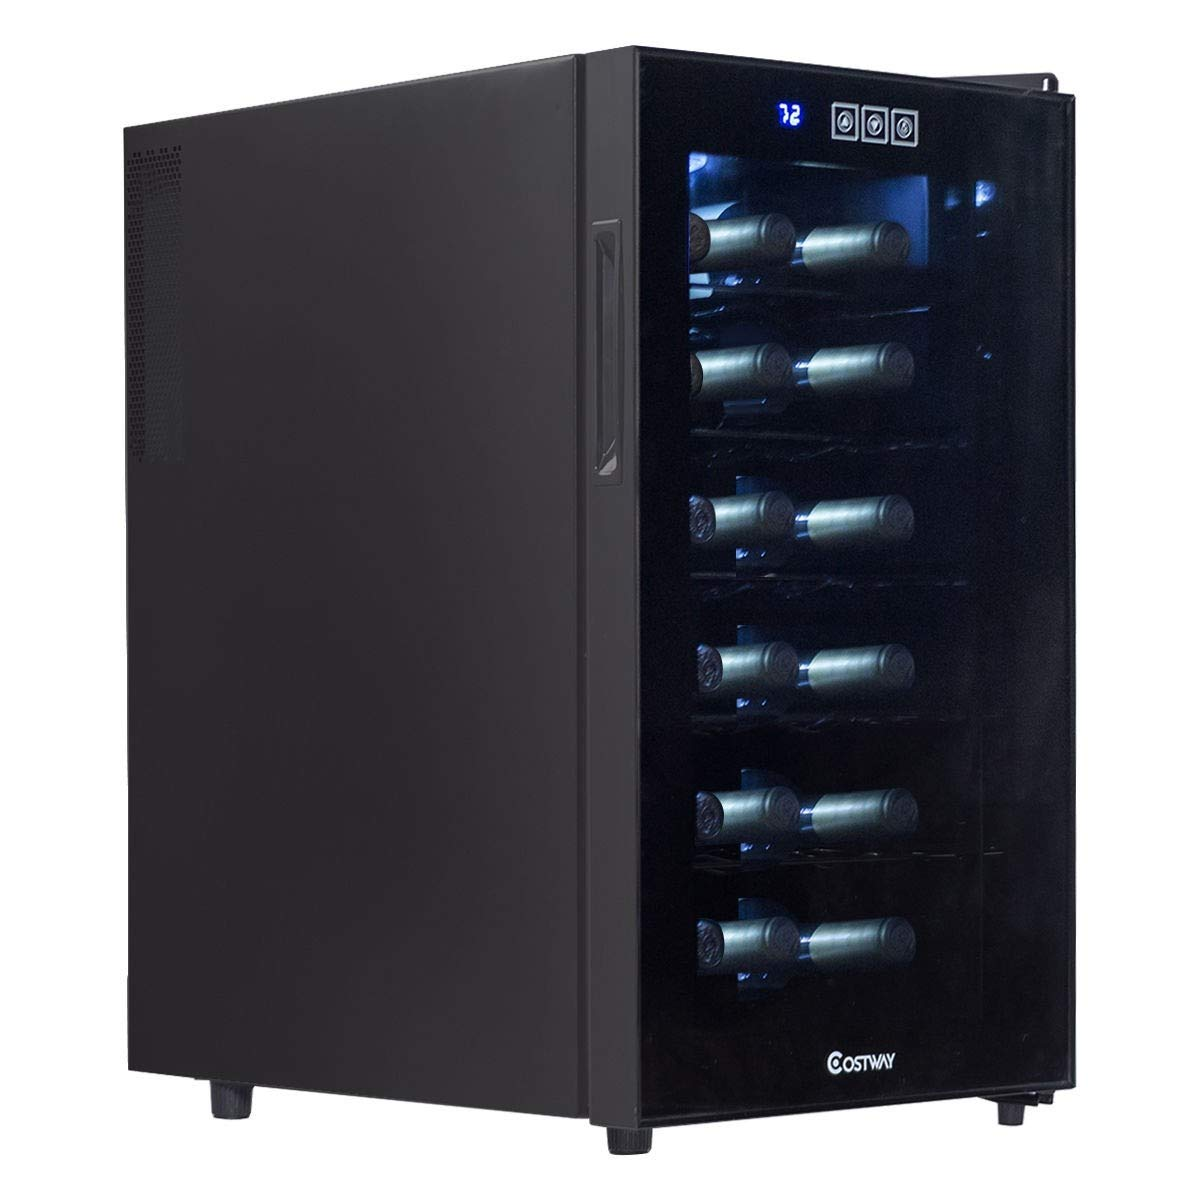 18 Bottle Freestanding Thermoelectric Wine Cooler Black Chiller Indoor Home Kitchen Bar Dining Compact Cabinet Space Saving Refrigerator Fridge Low Noise